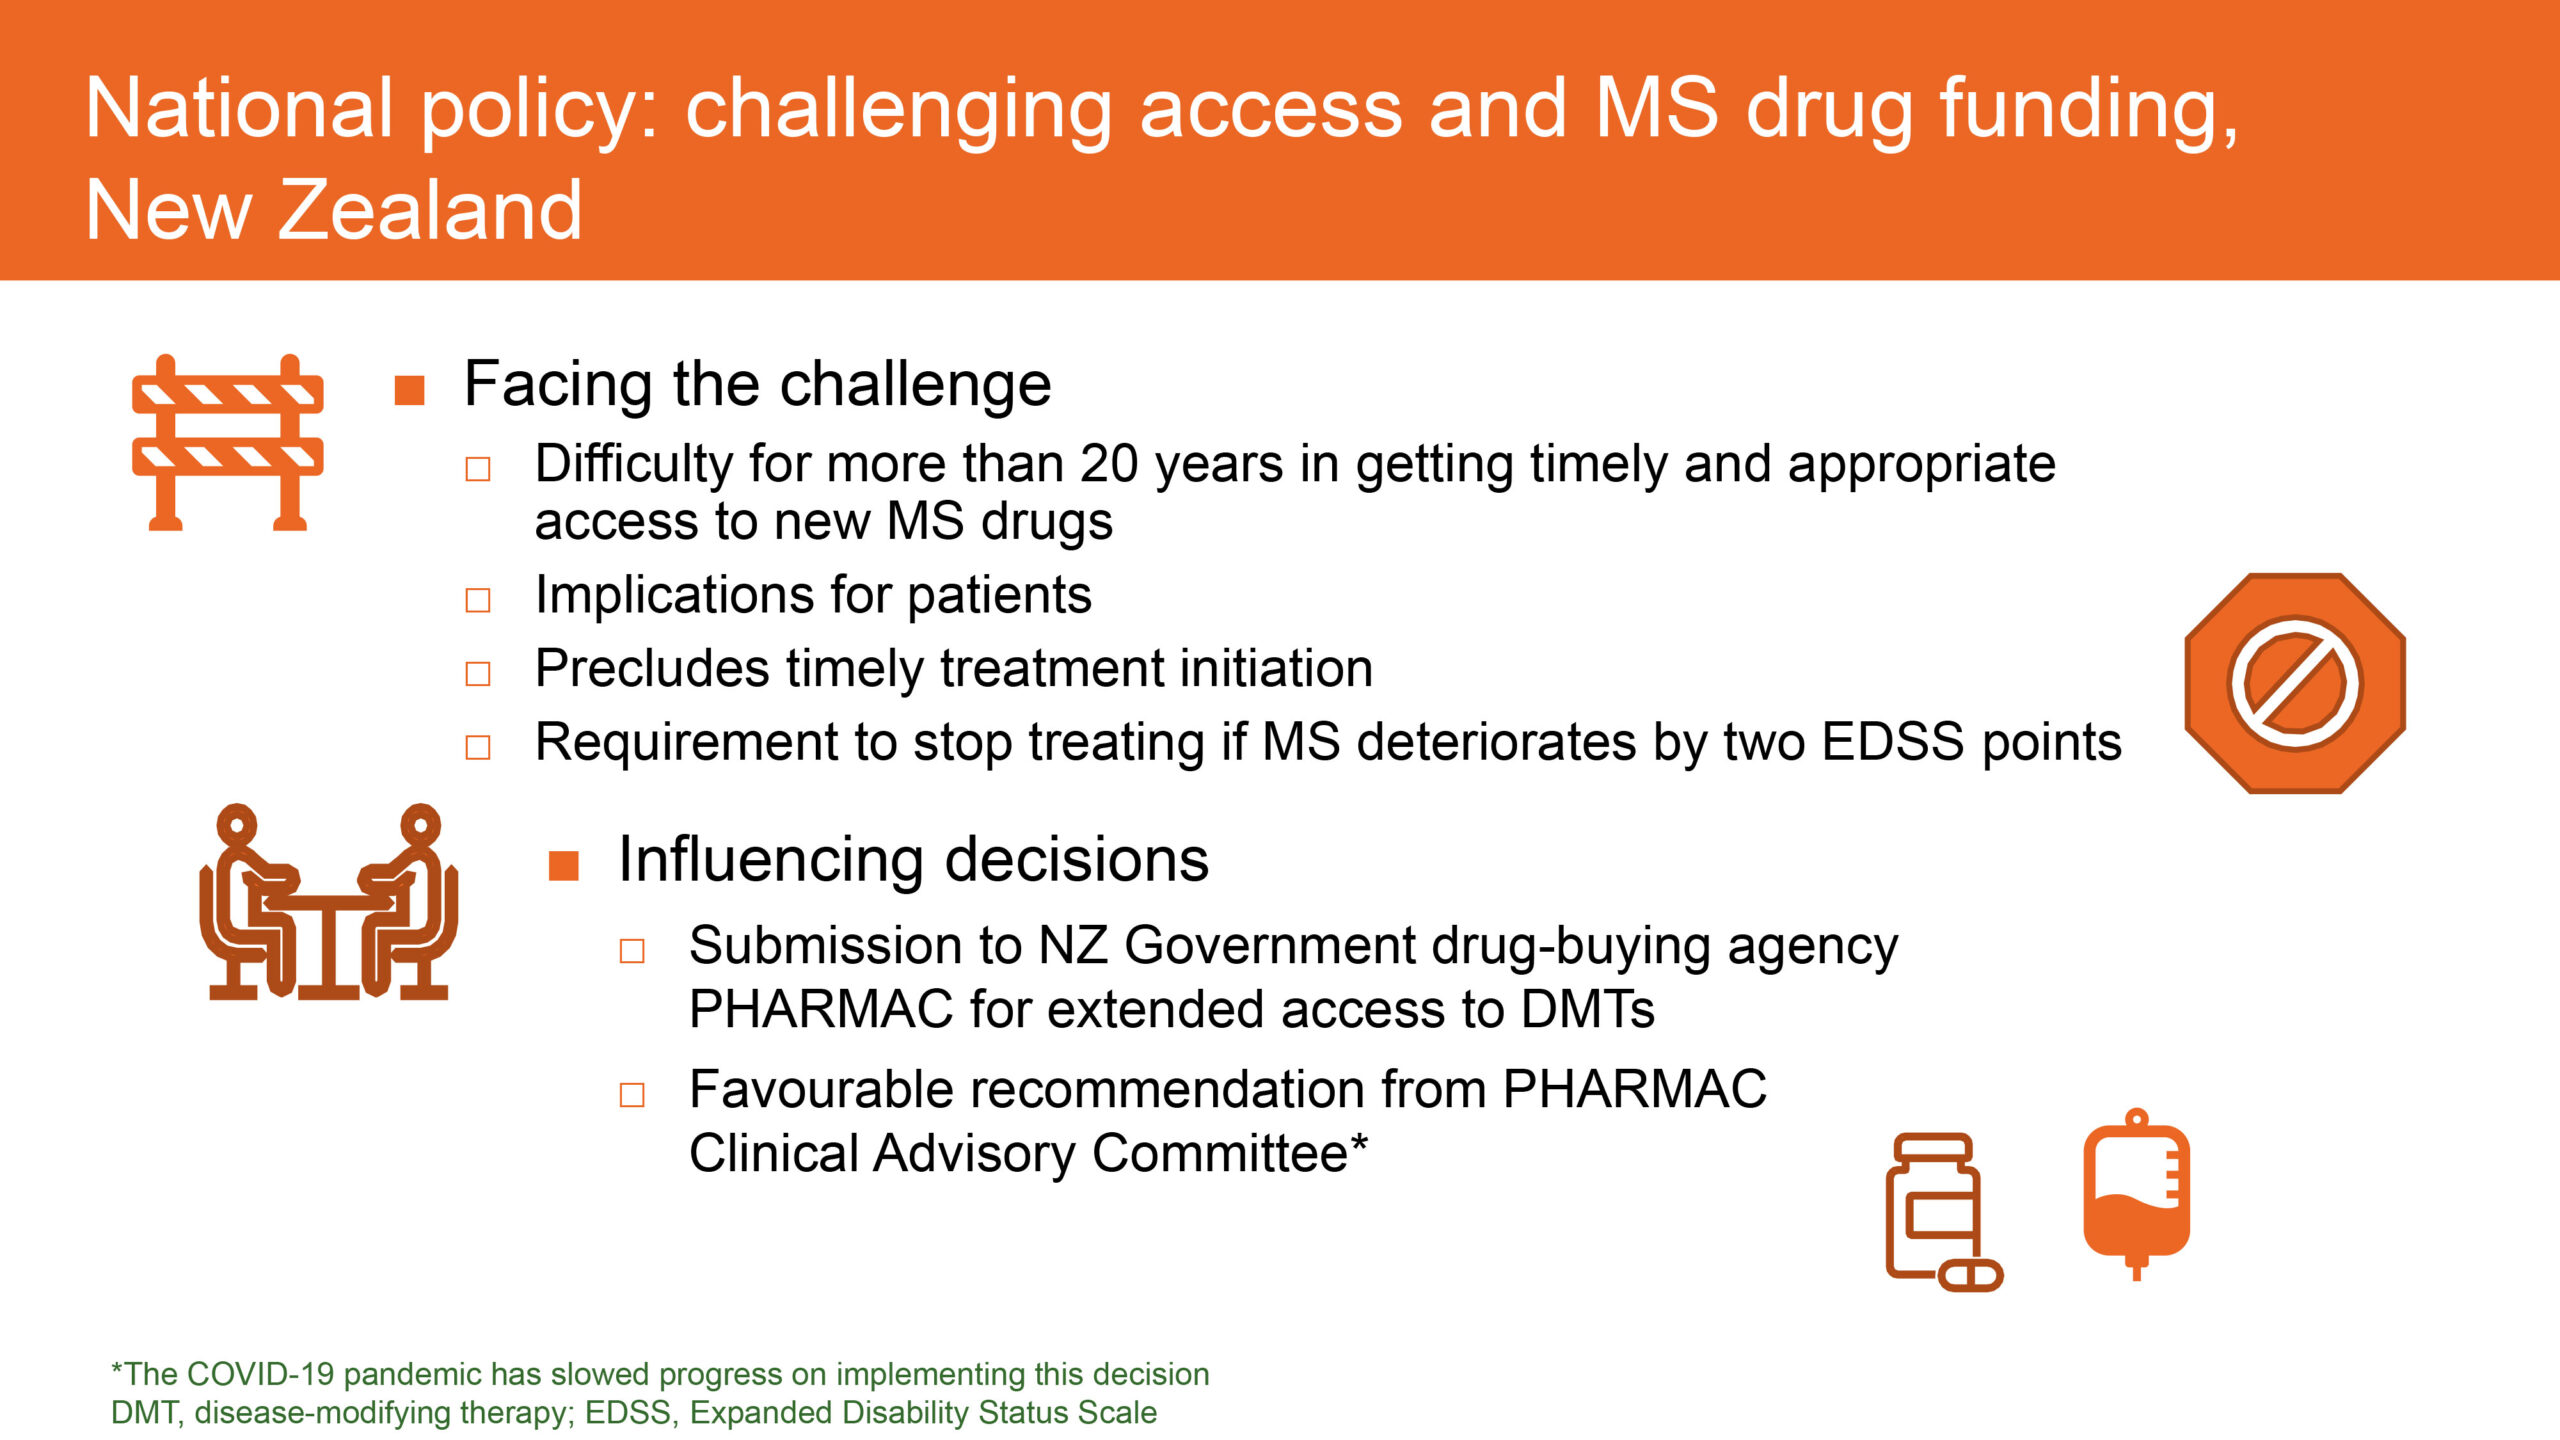 dmt-access-and-funding-new-zealand__